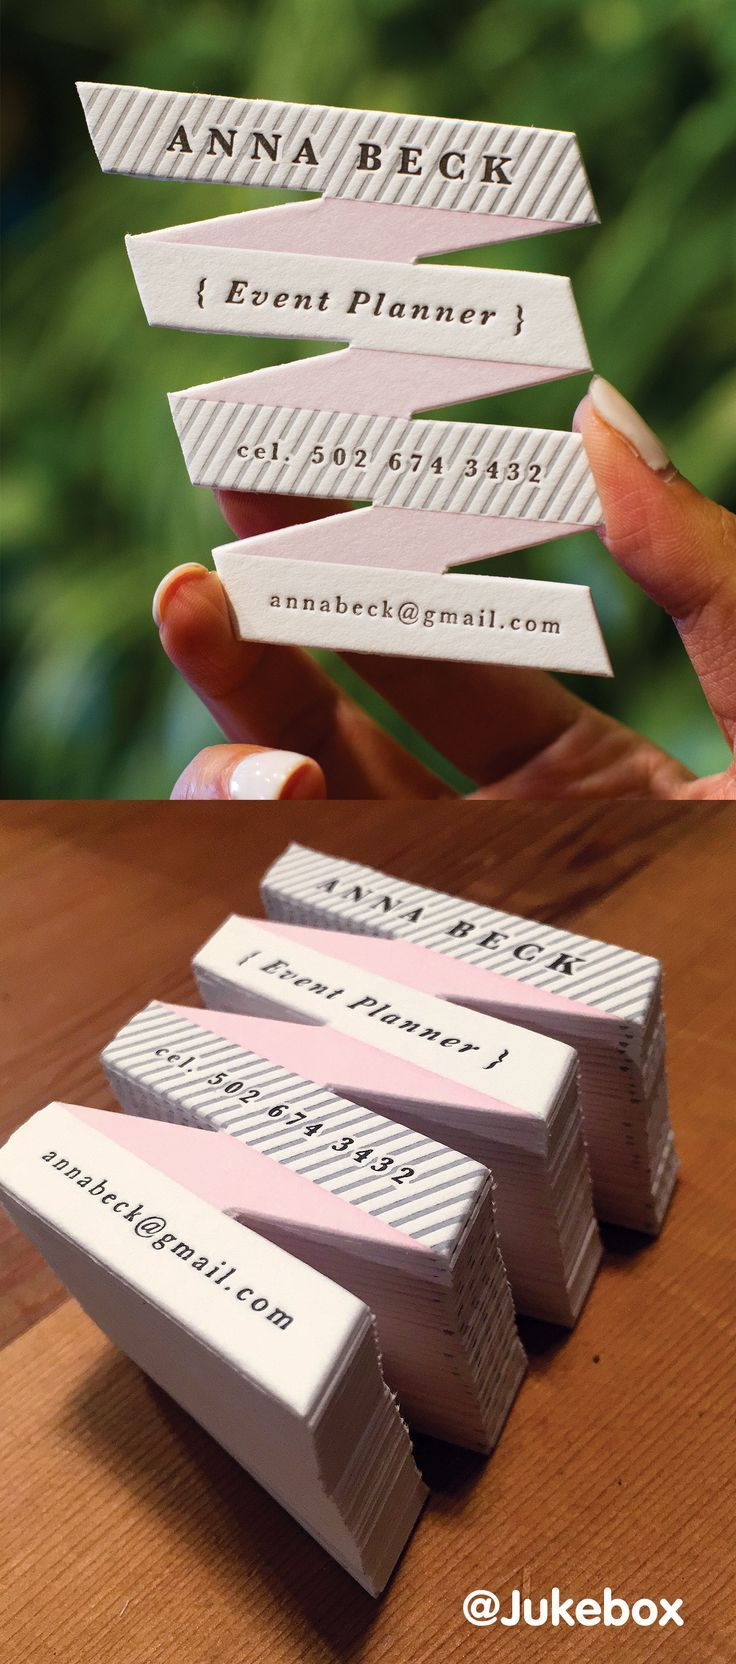 Personalize your business cards with a custom die-cut shape, like ...